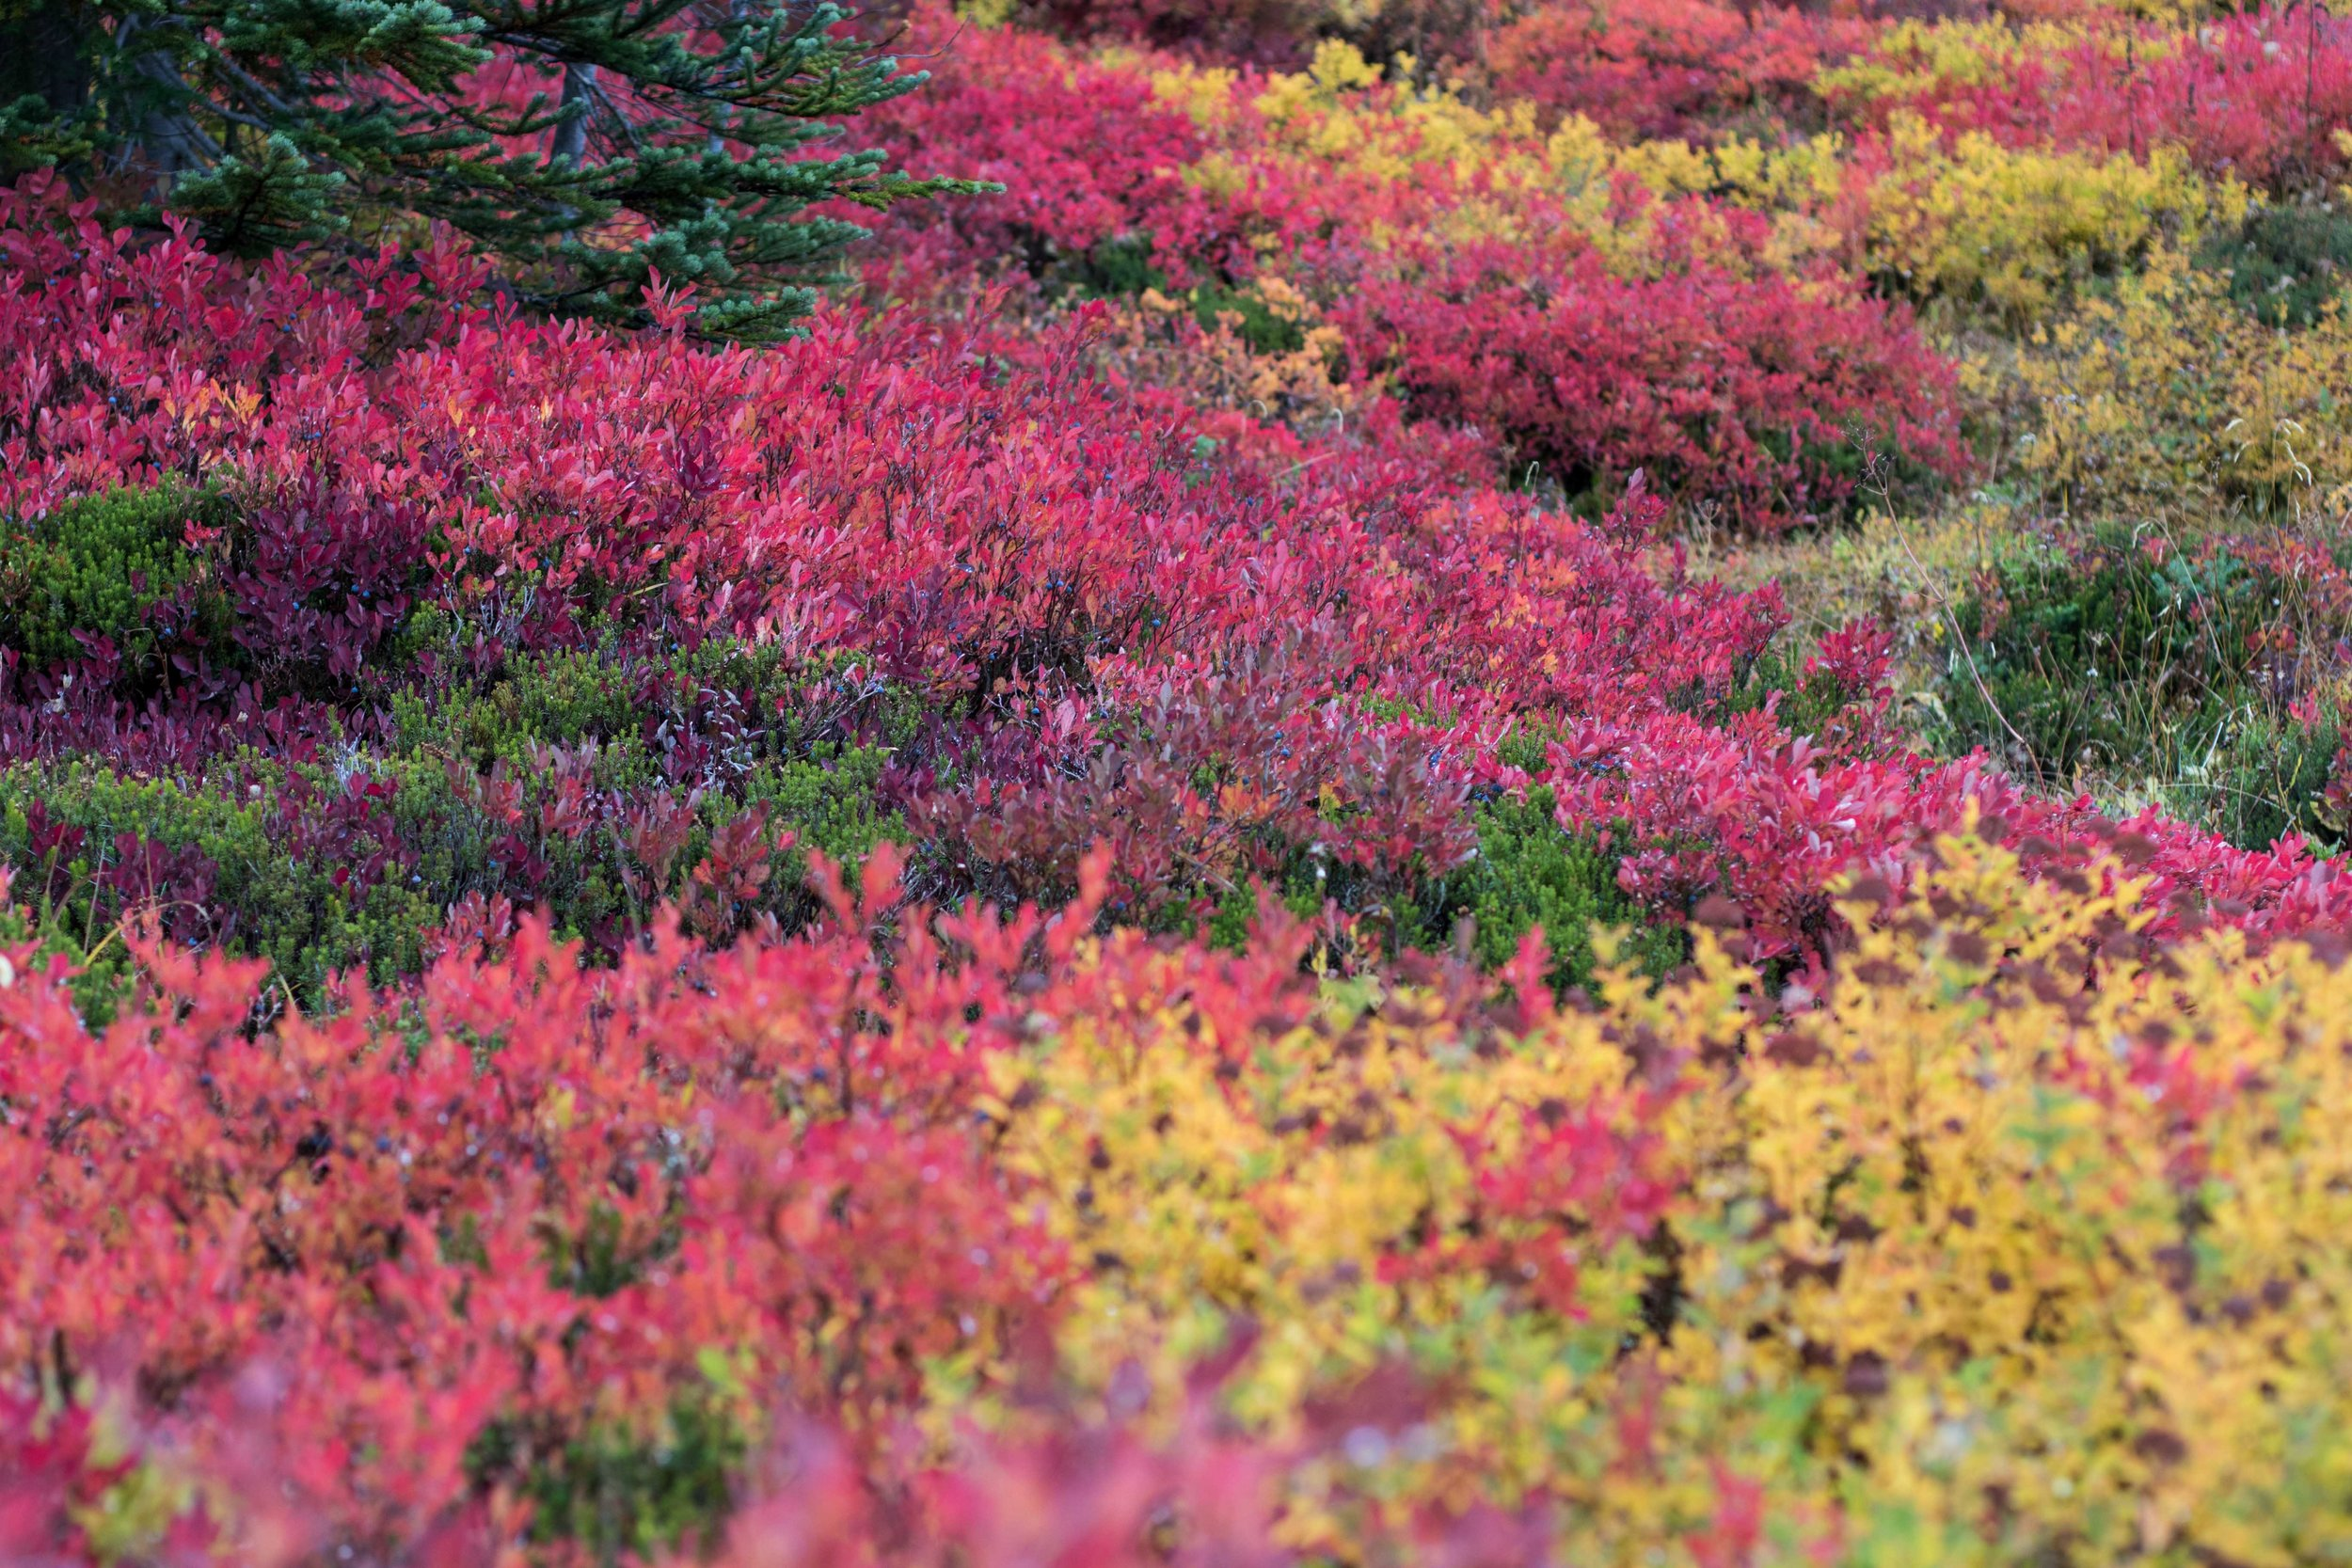 Fall colors at Mt. Rainier - Mt. Rainier was no where to be found